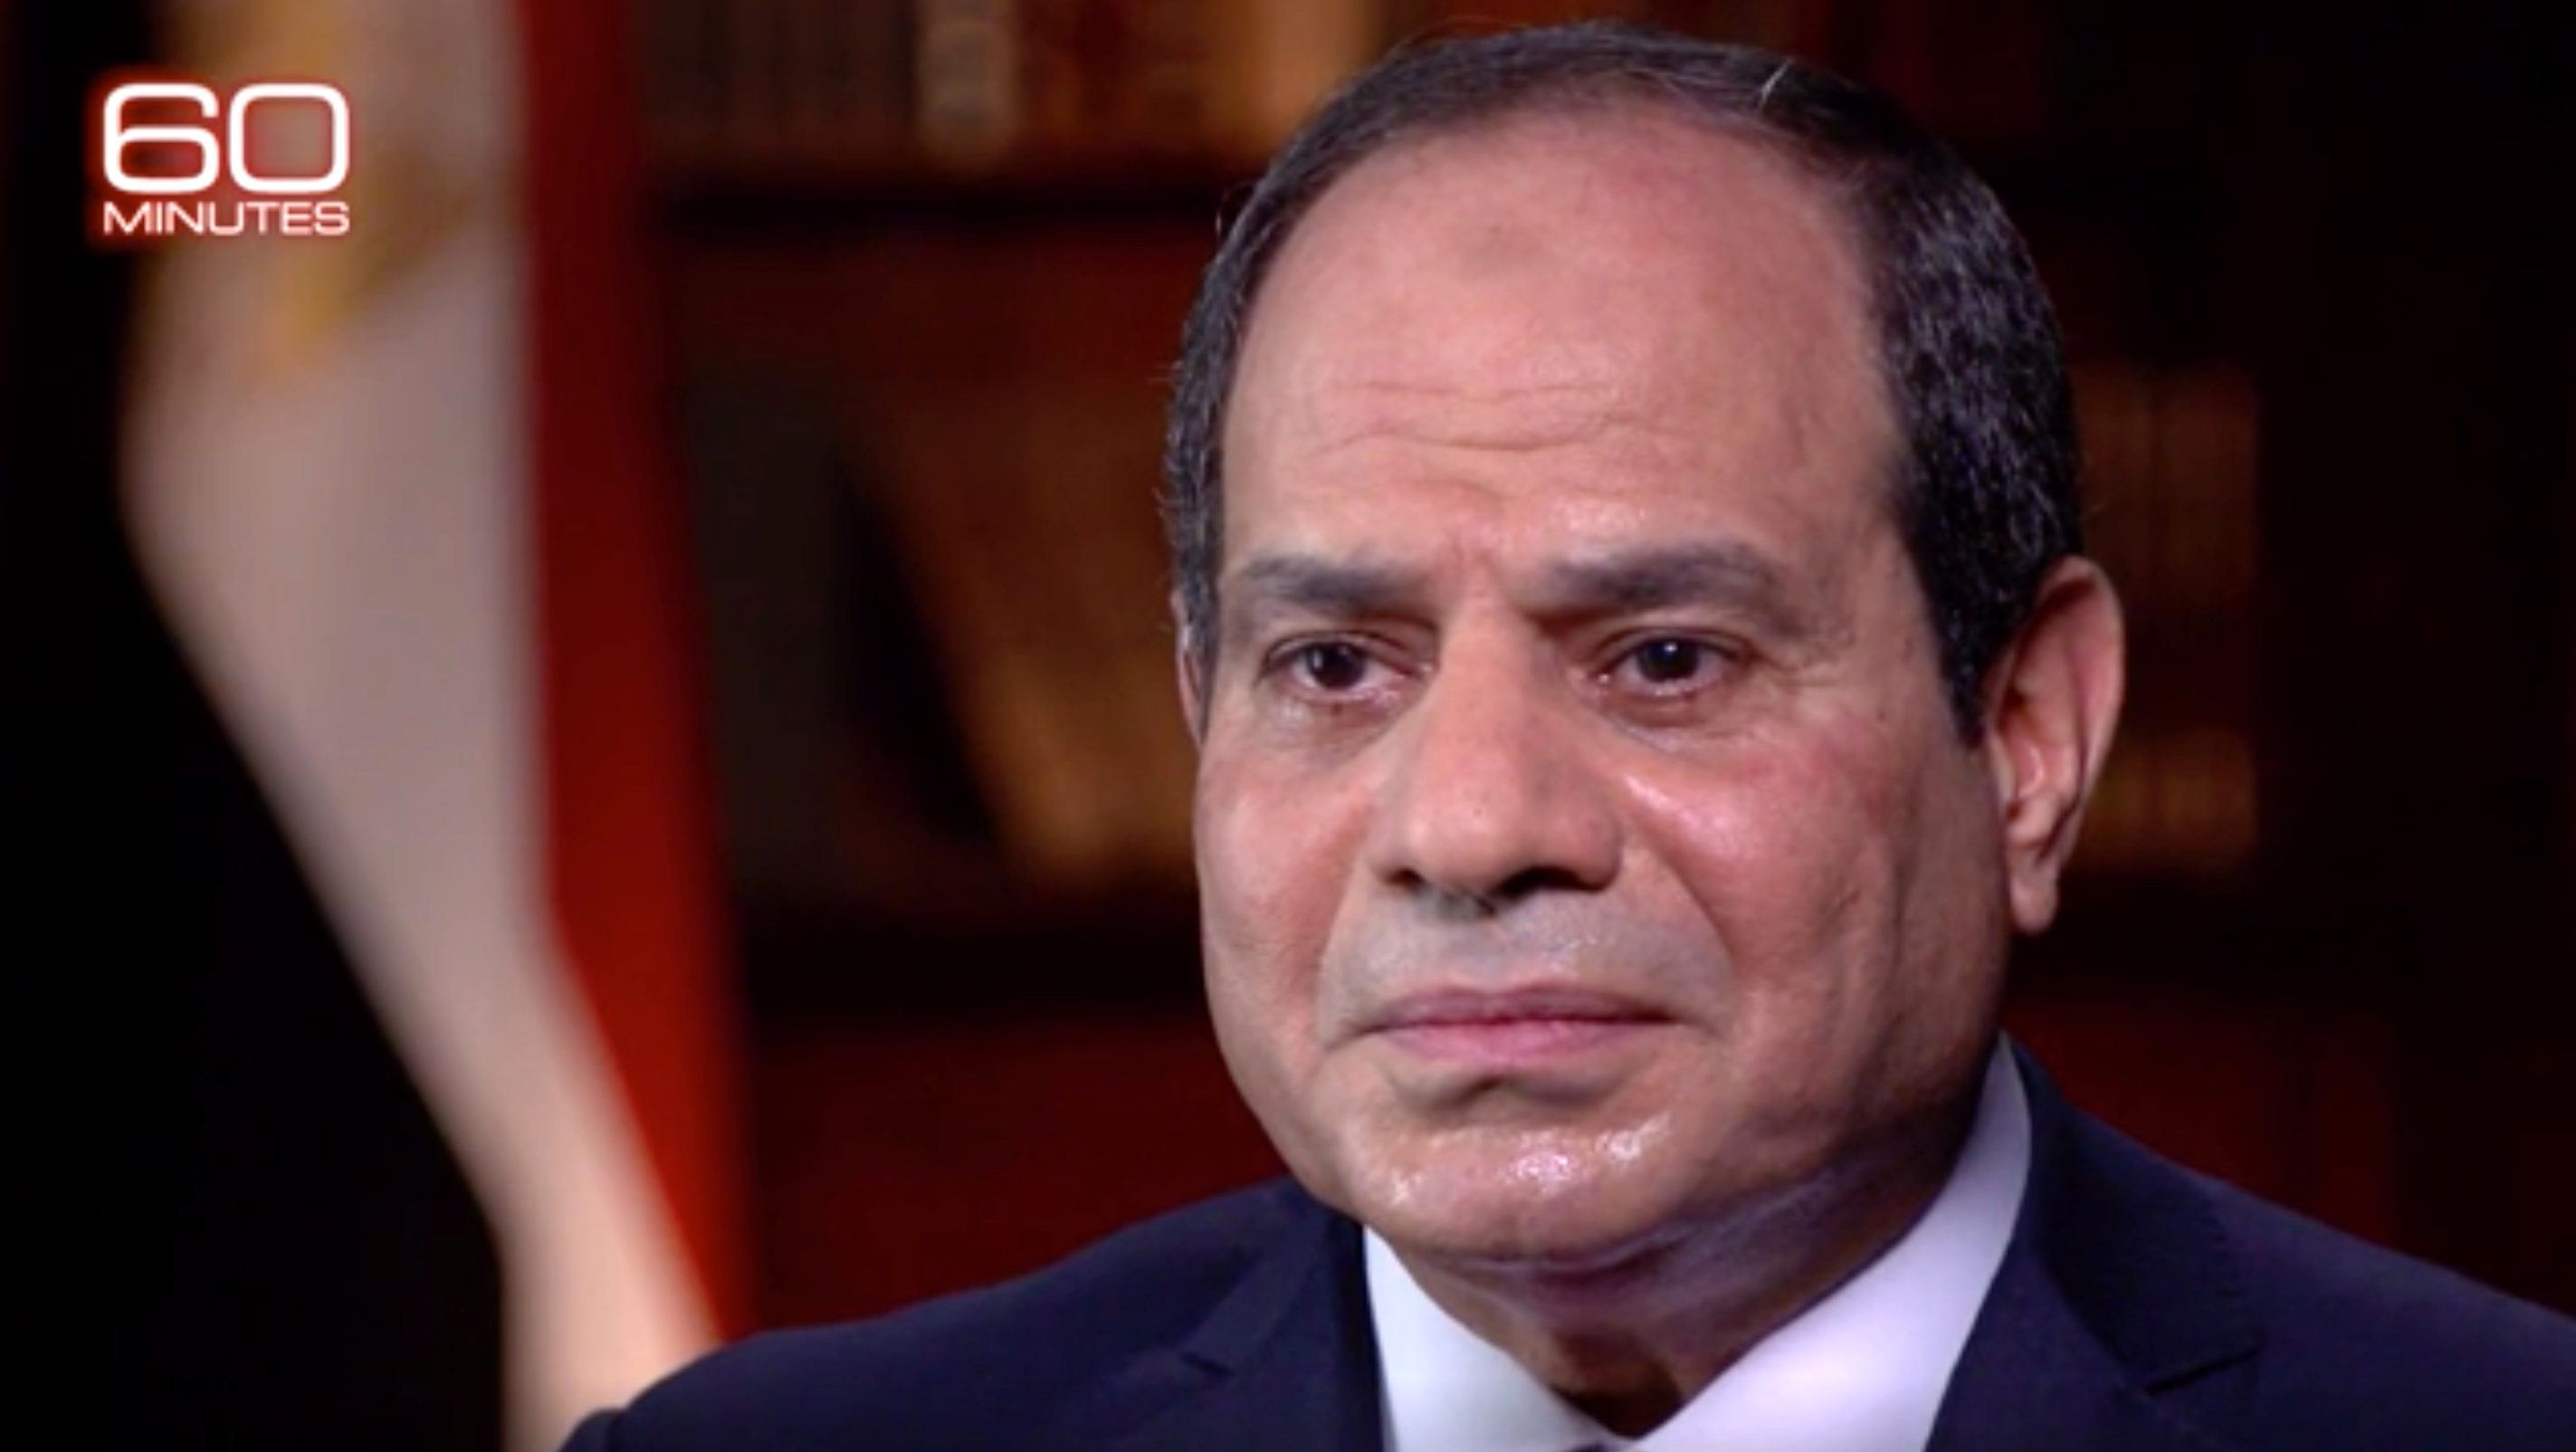 CBS revealed that after the interview was filmed, an Egyptian ambassador contacted its 60 Minutes team and warned that it could not be aired.